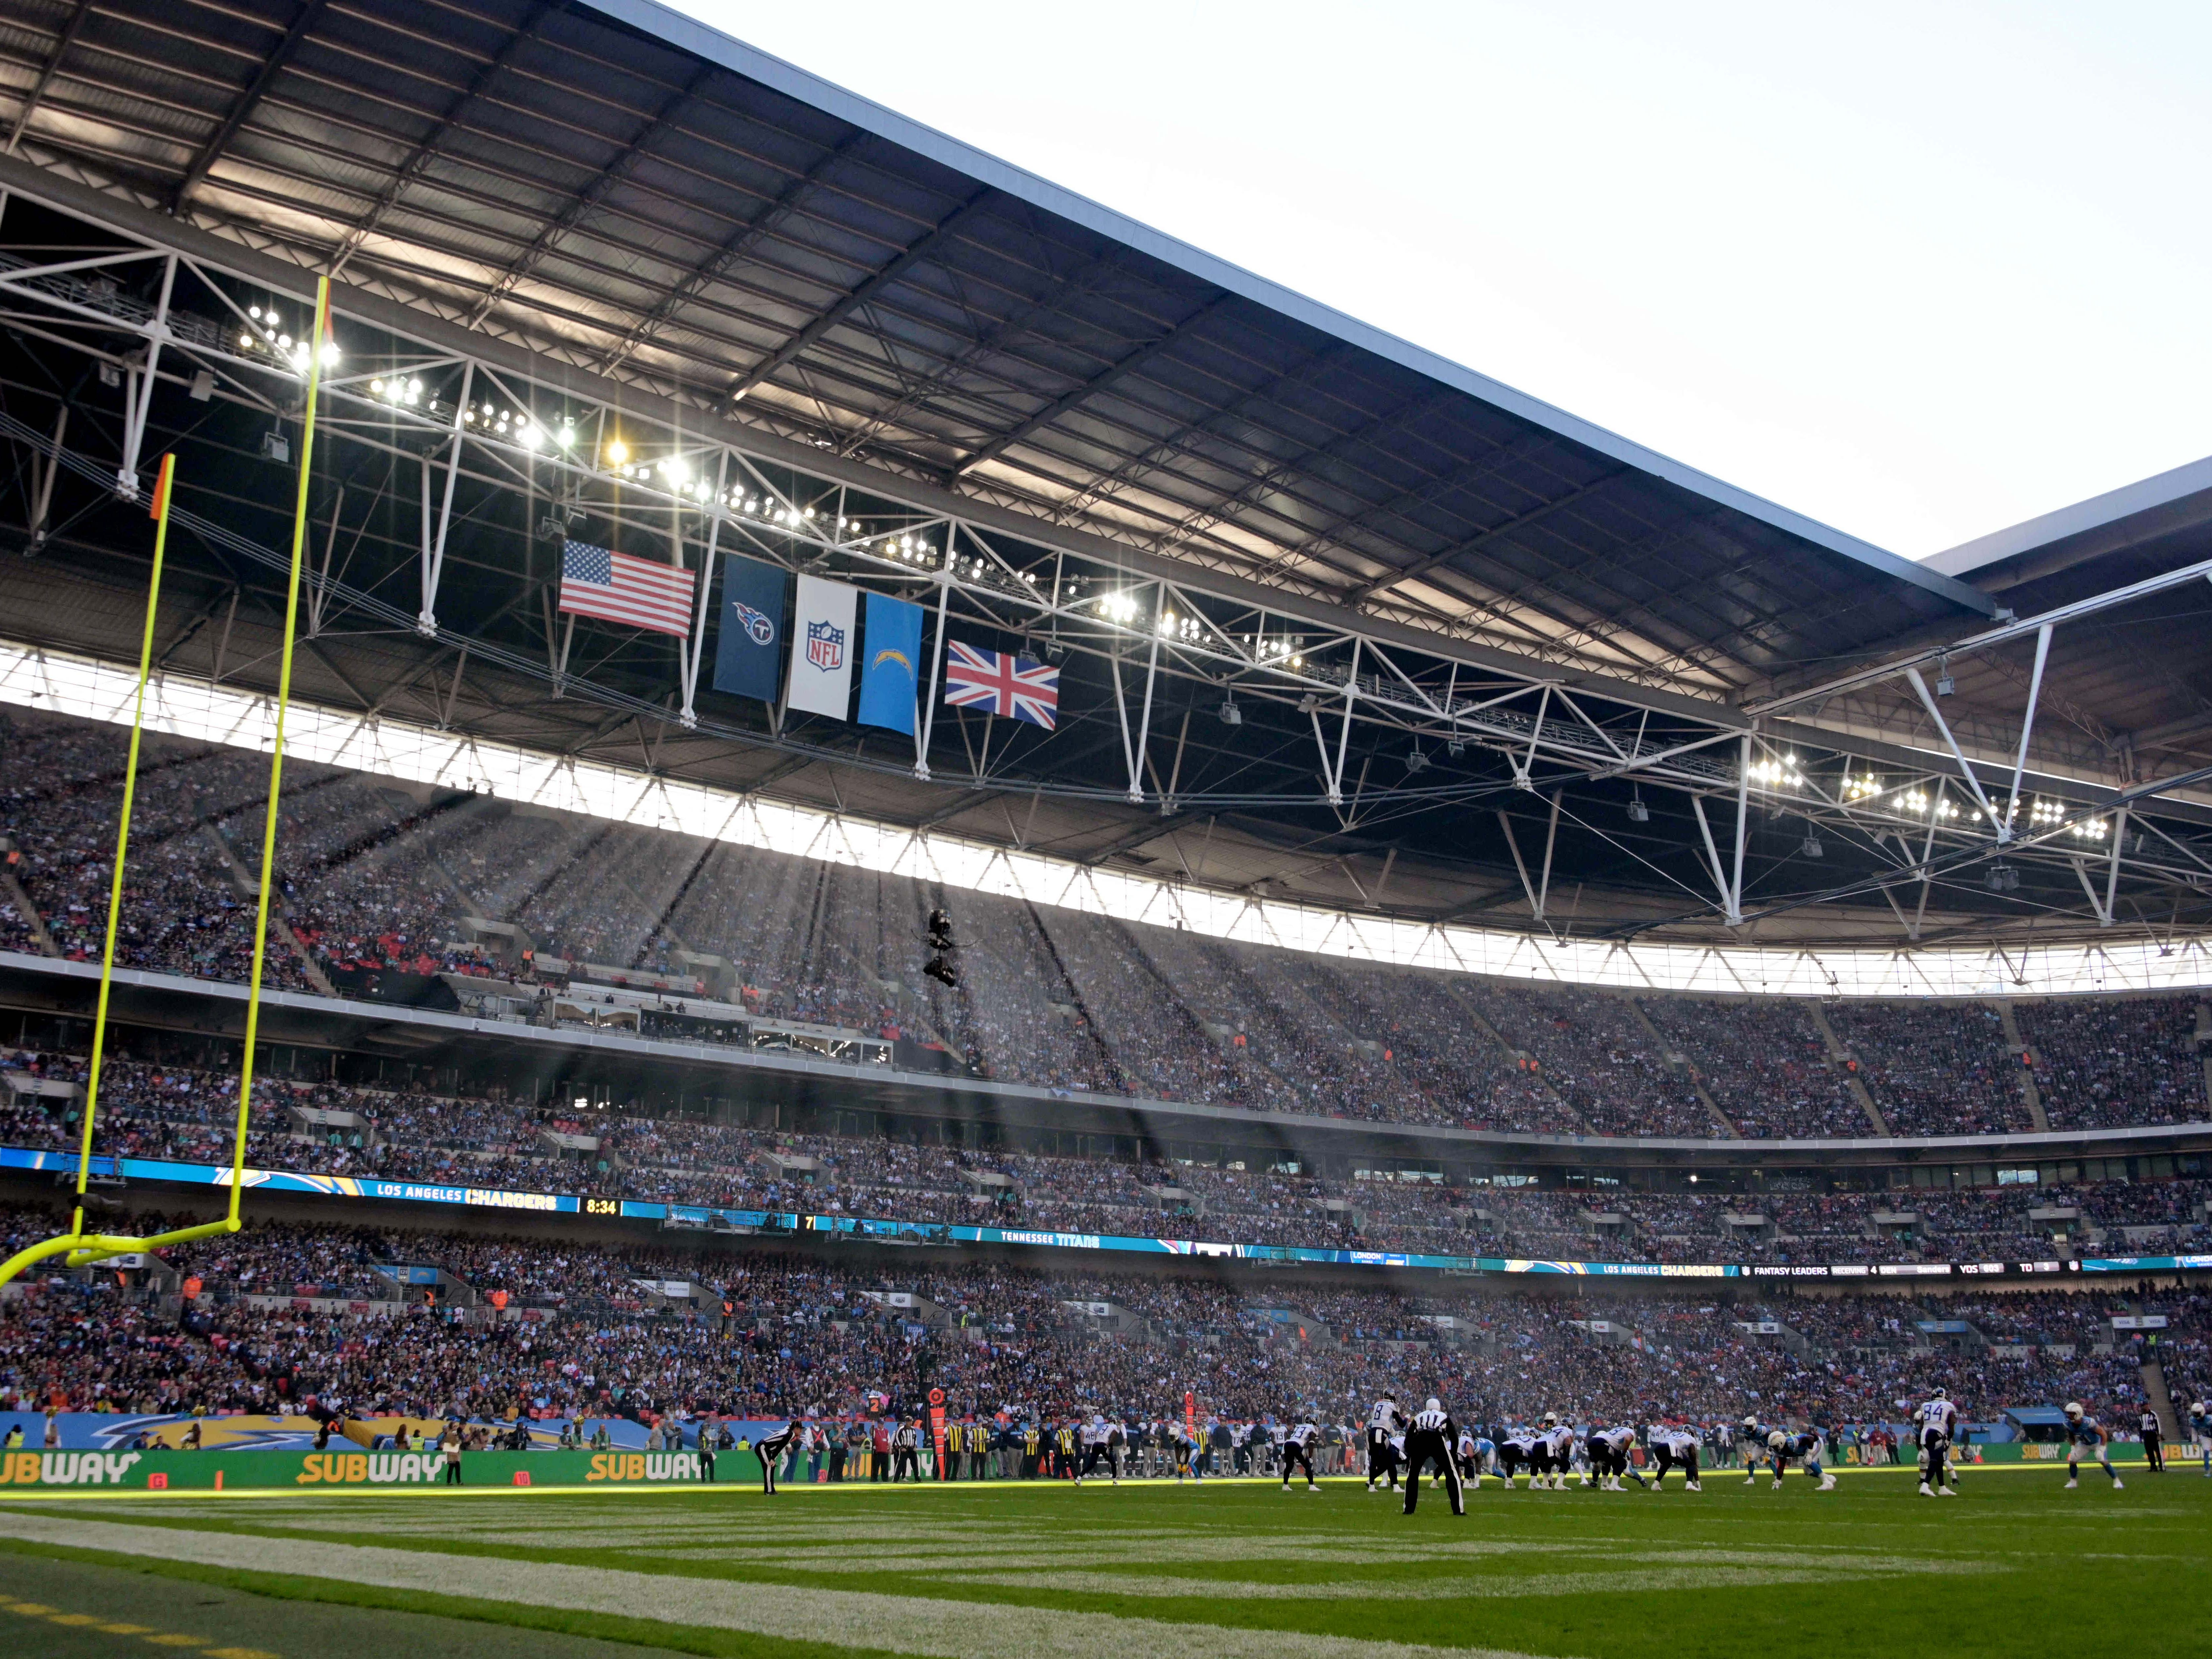 The Los Angeles Chargers and Tennessee Titans play during an NFL International Series game at Wembley Stadium. The Chargers won the game, 20-19.